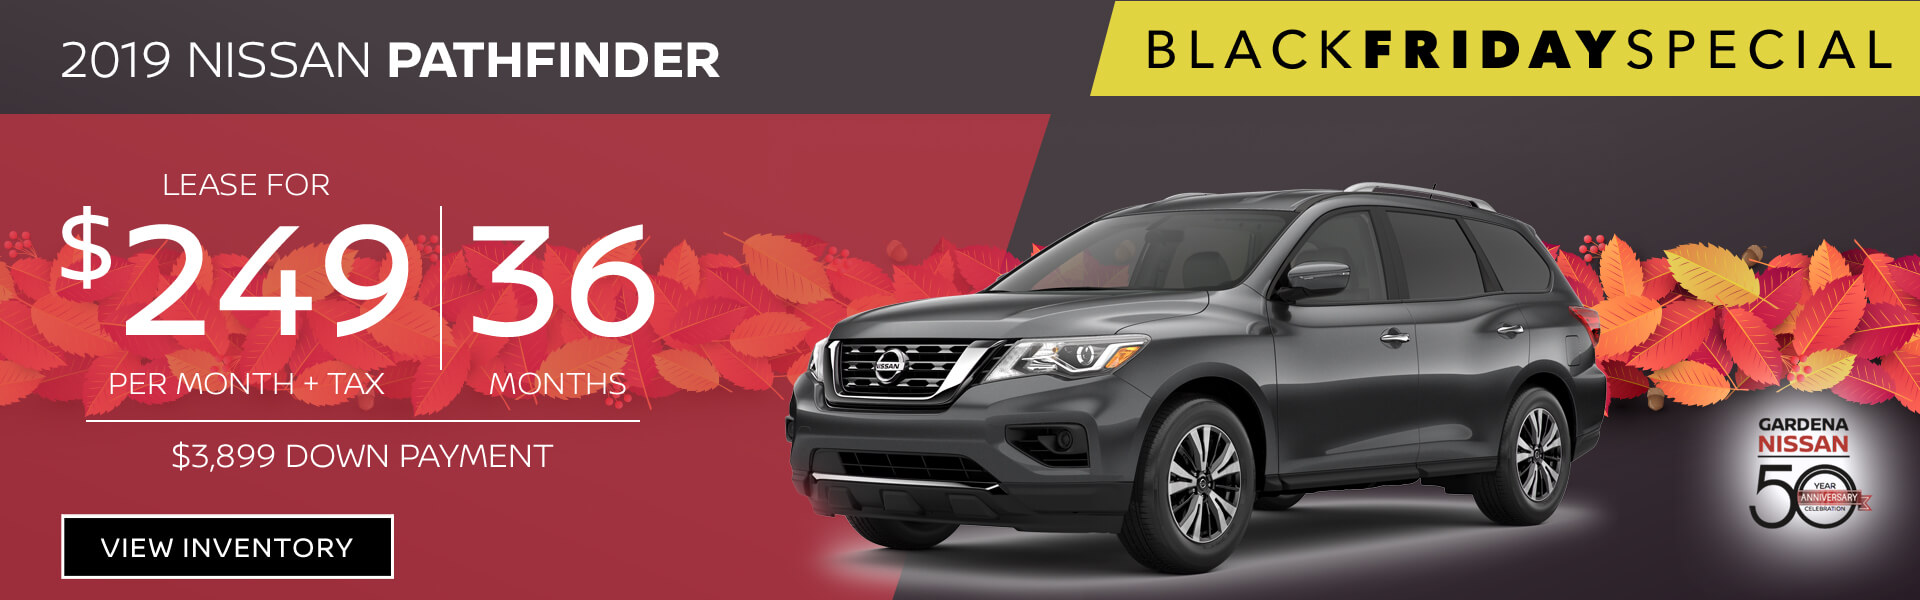 Nissan Make A Payment >> Gardena Nissan Black Friday Sale New Pre Owned Vehicles